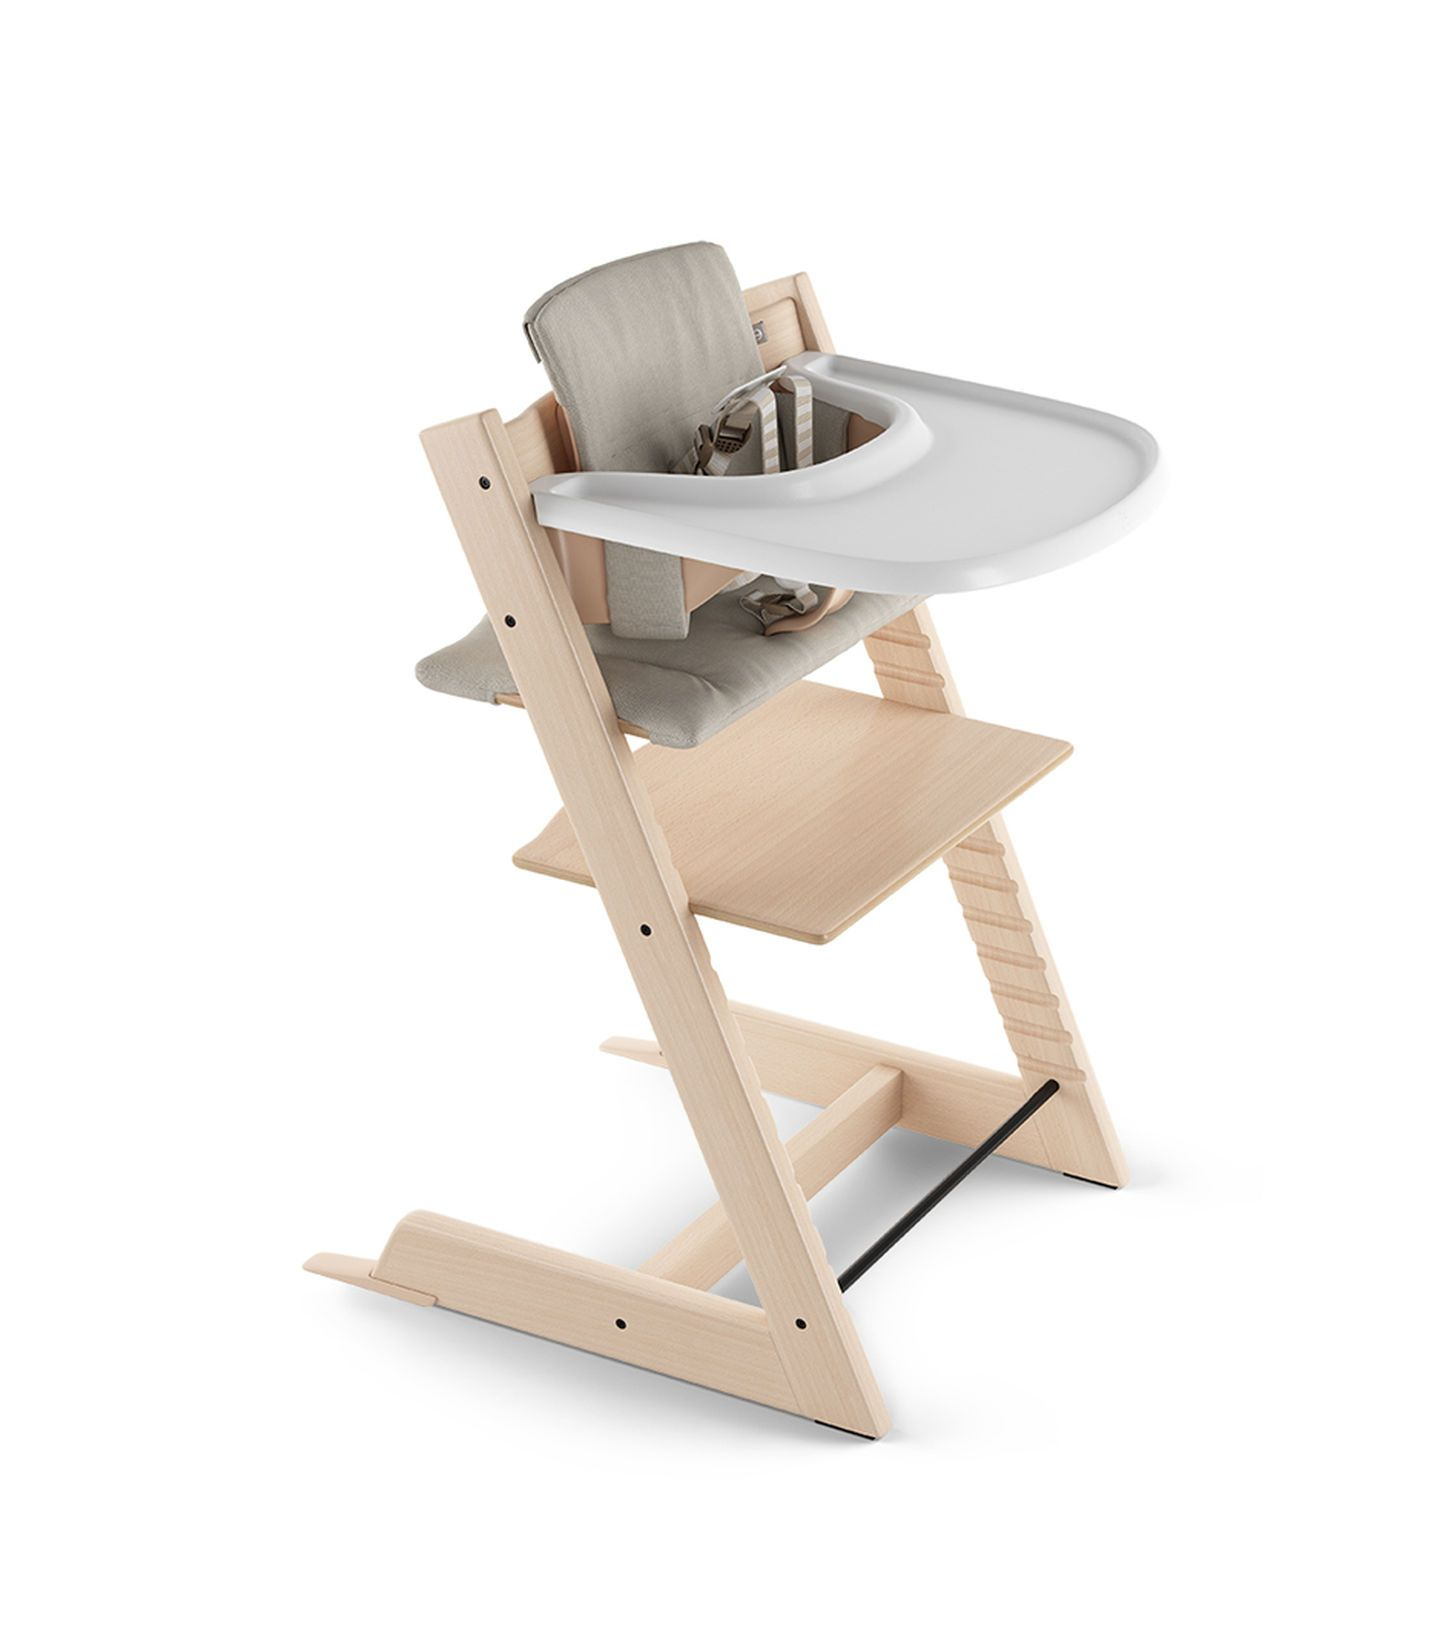 Tripp Trapp Hc Cpl Natural W Honeycomb Happy Cushion Tray Baby High Chair Tripp Trapp Chair Stokke